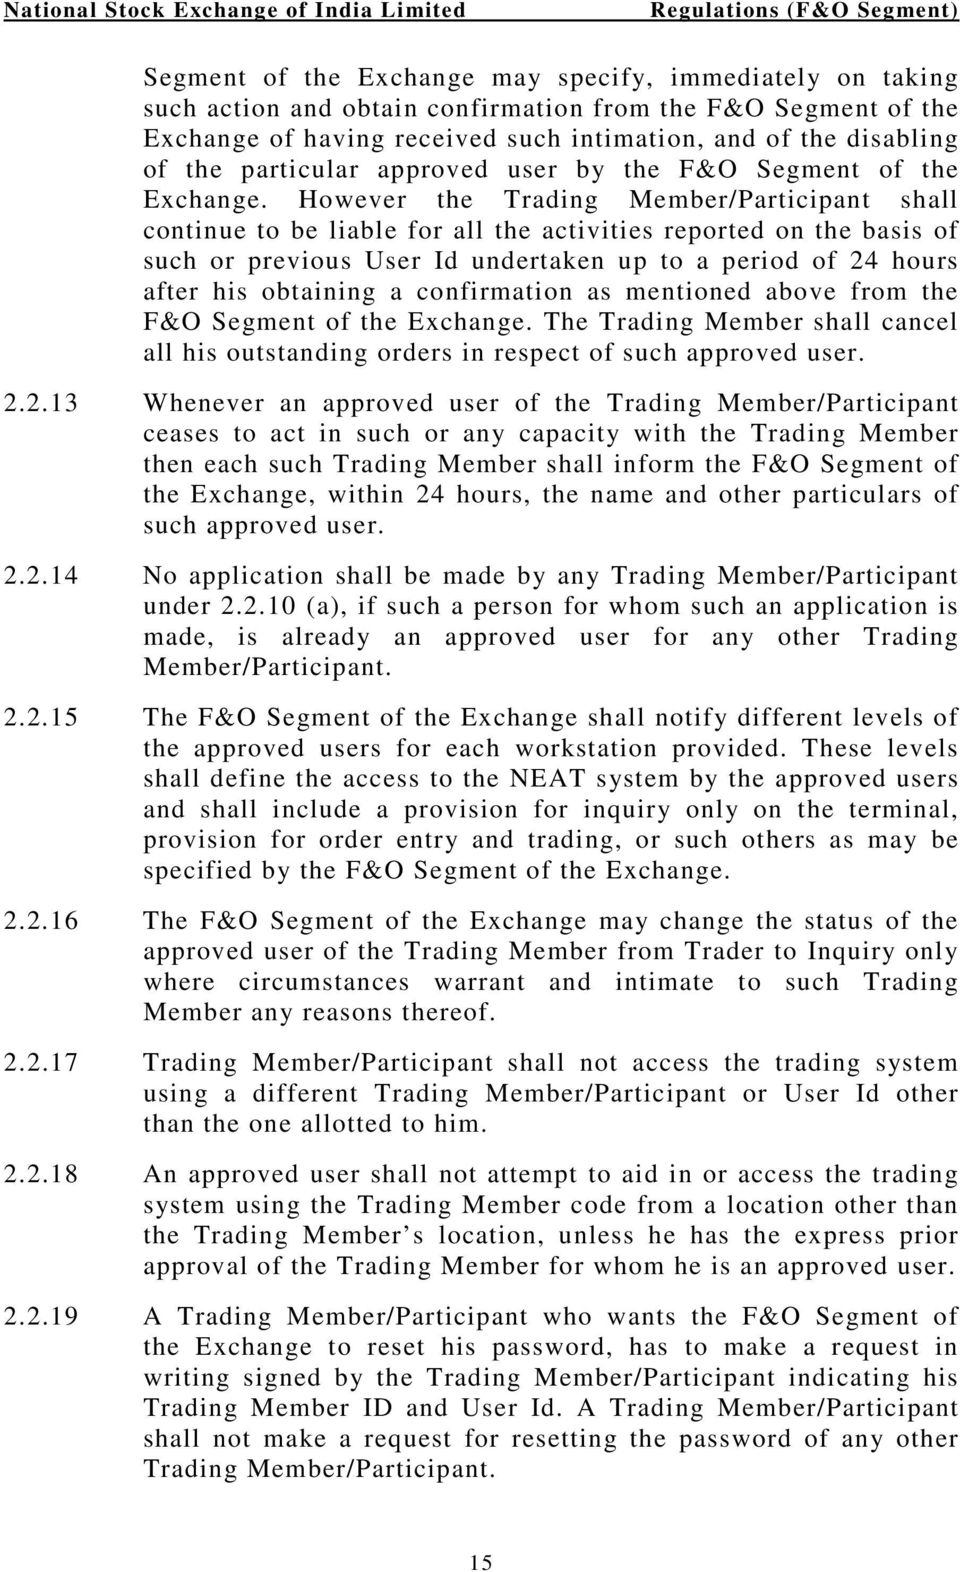 However the Trading Member/Participant shall continue to be liable for all the activities reported on the basis of such or previous User Id undertaken up to a period of 24 hours after his obtaining a